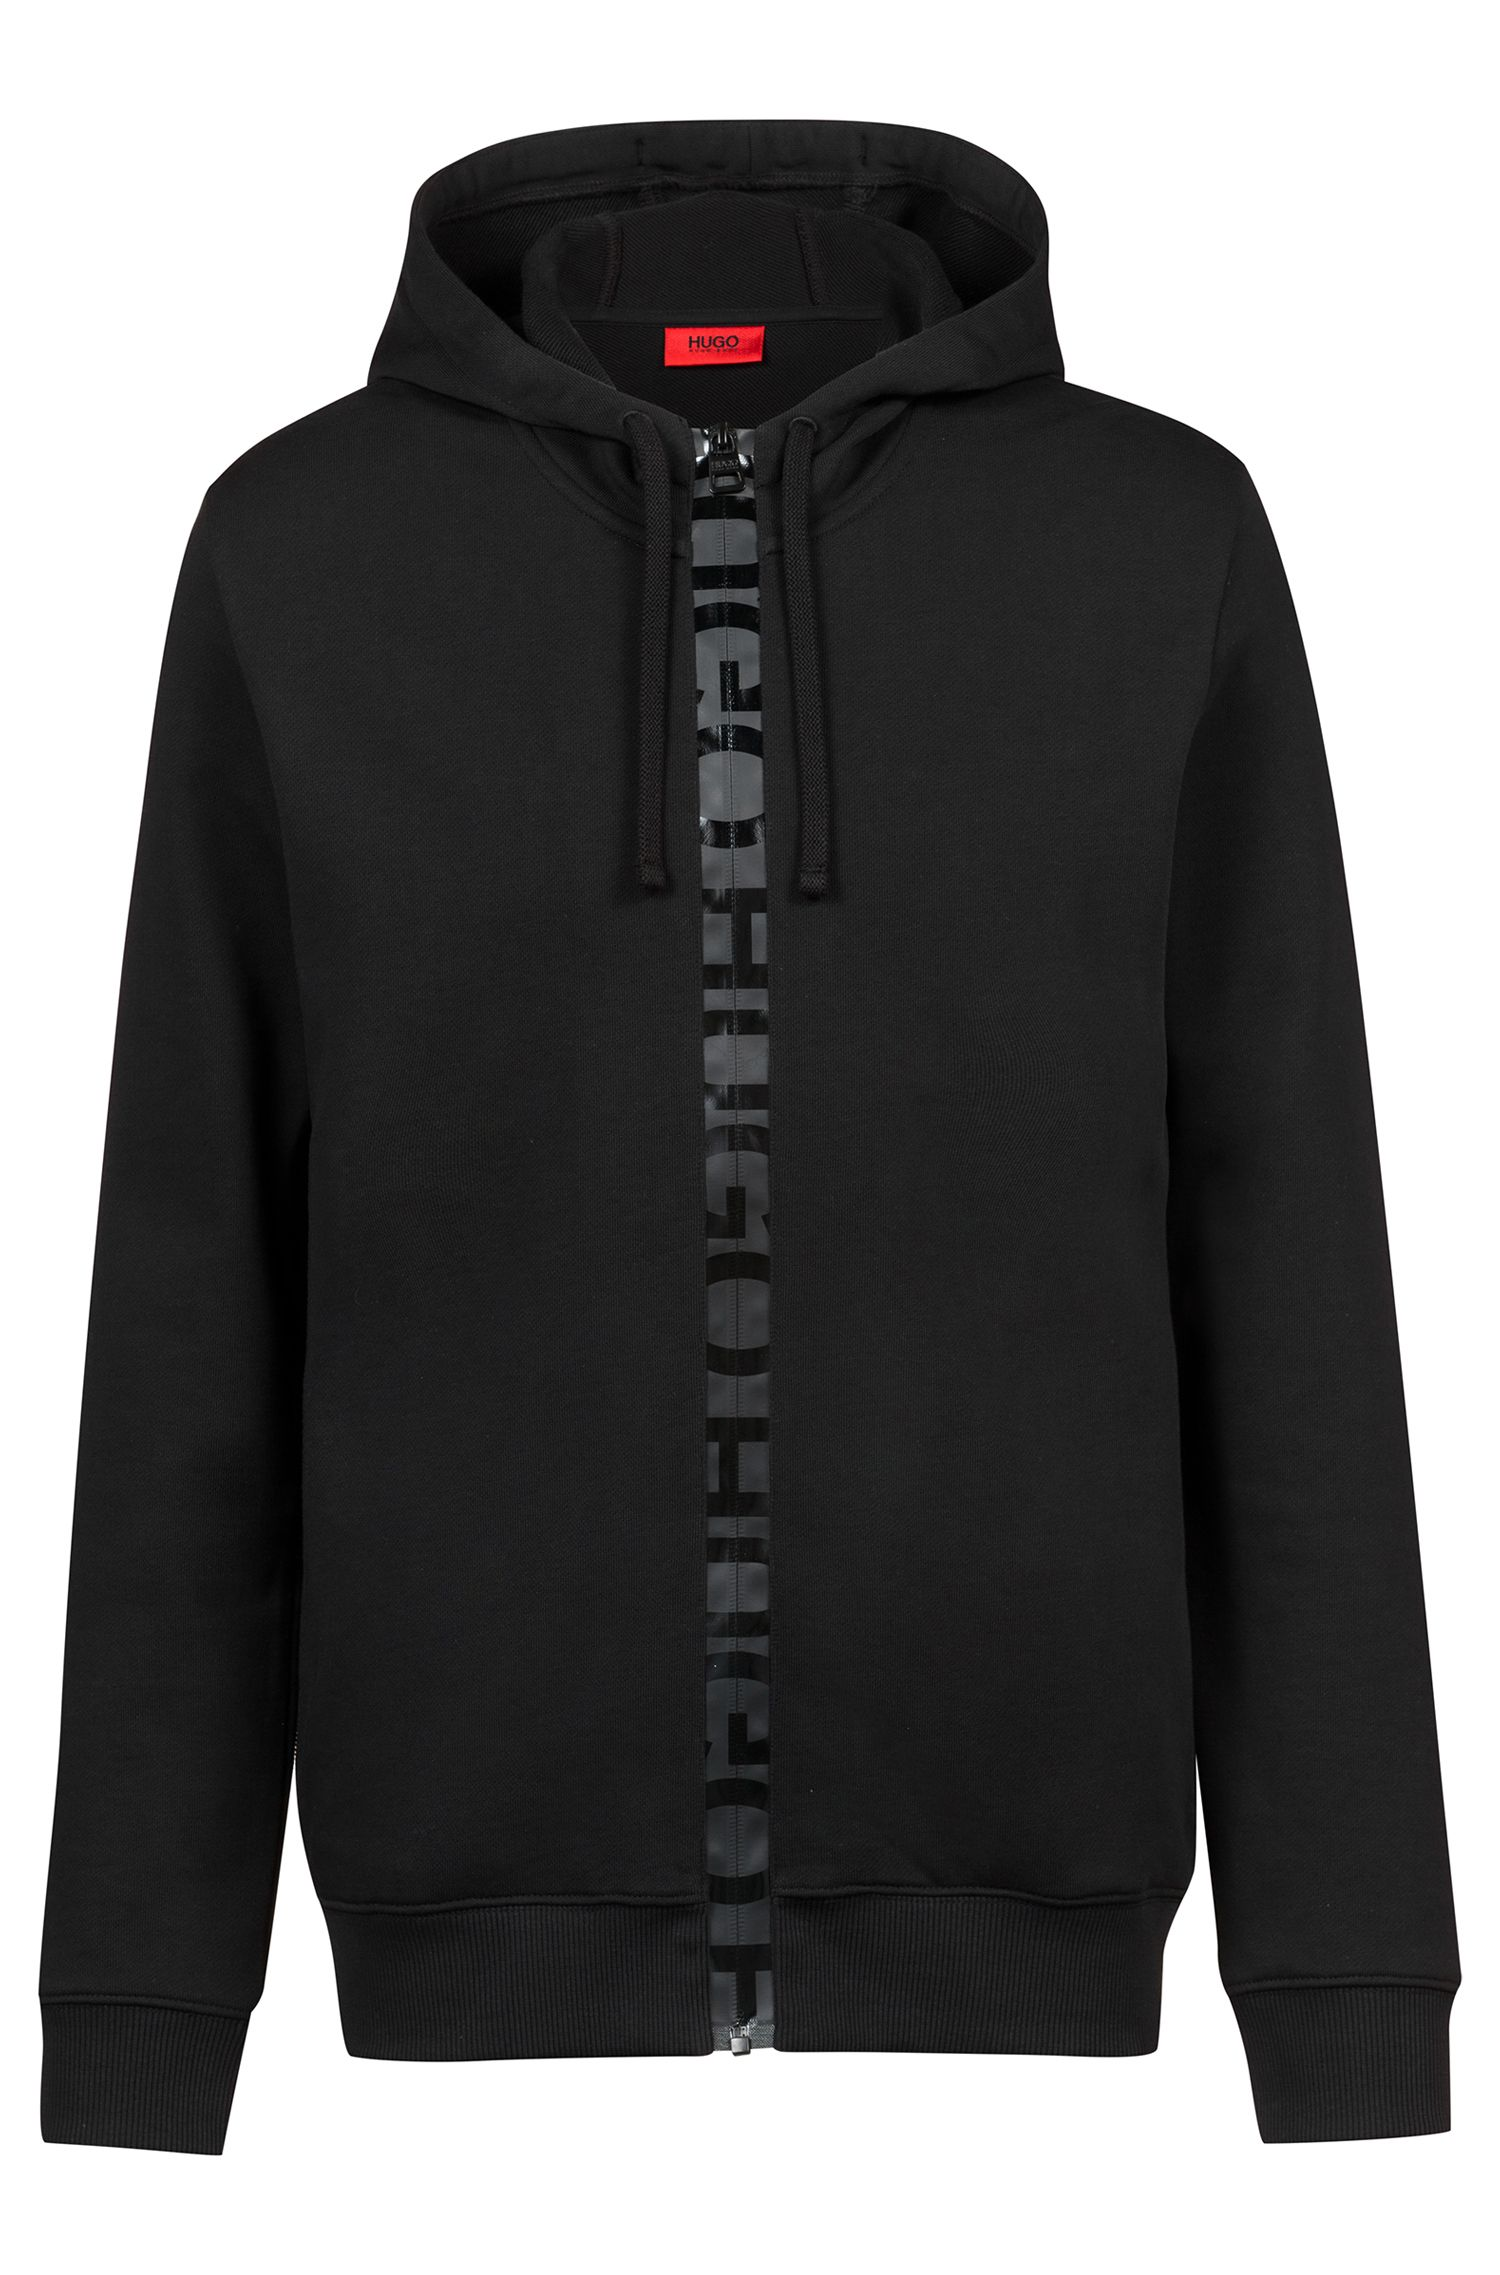 French-terry hooded sweatshirt with logo-tape zip, Black